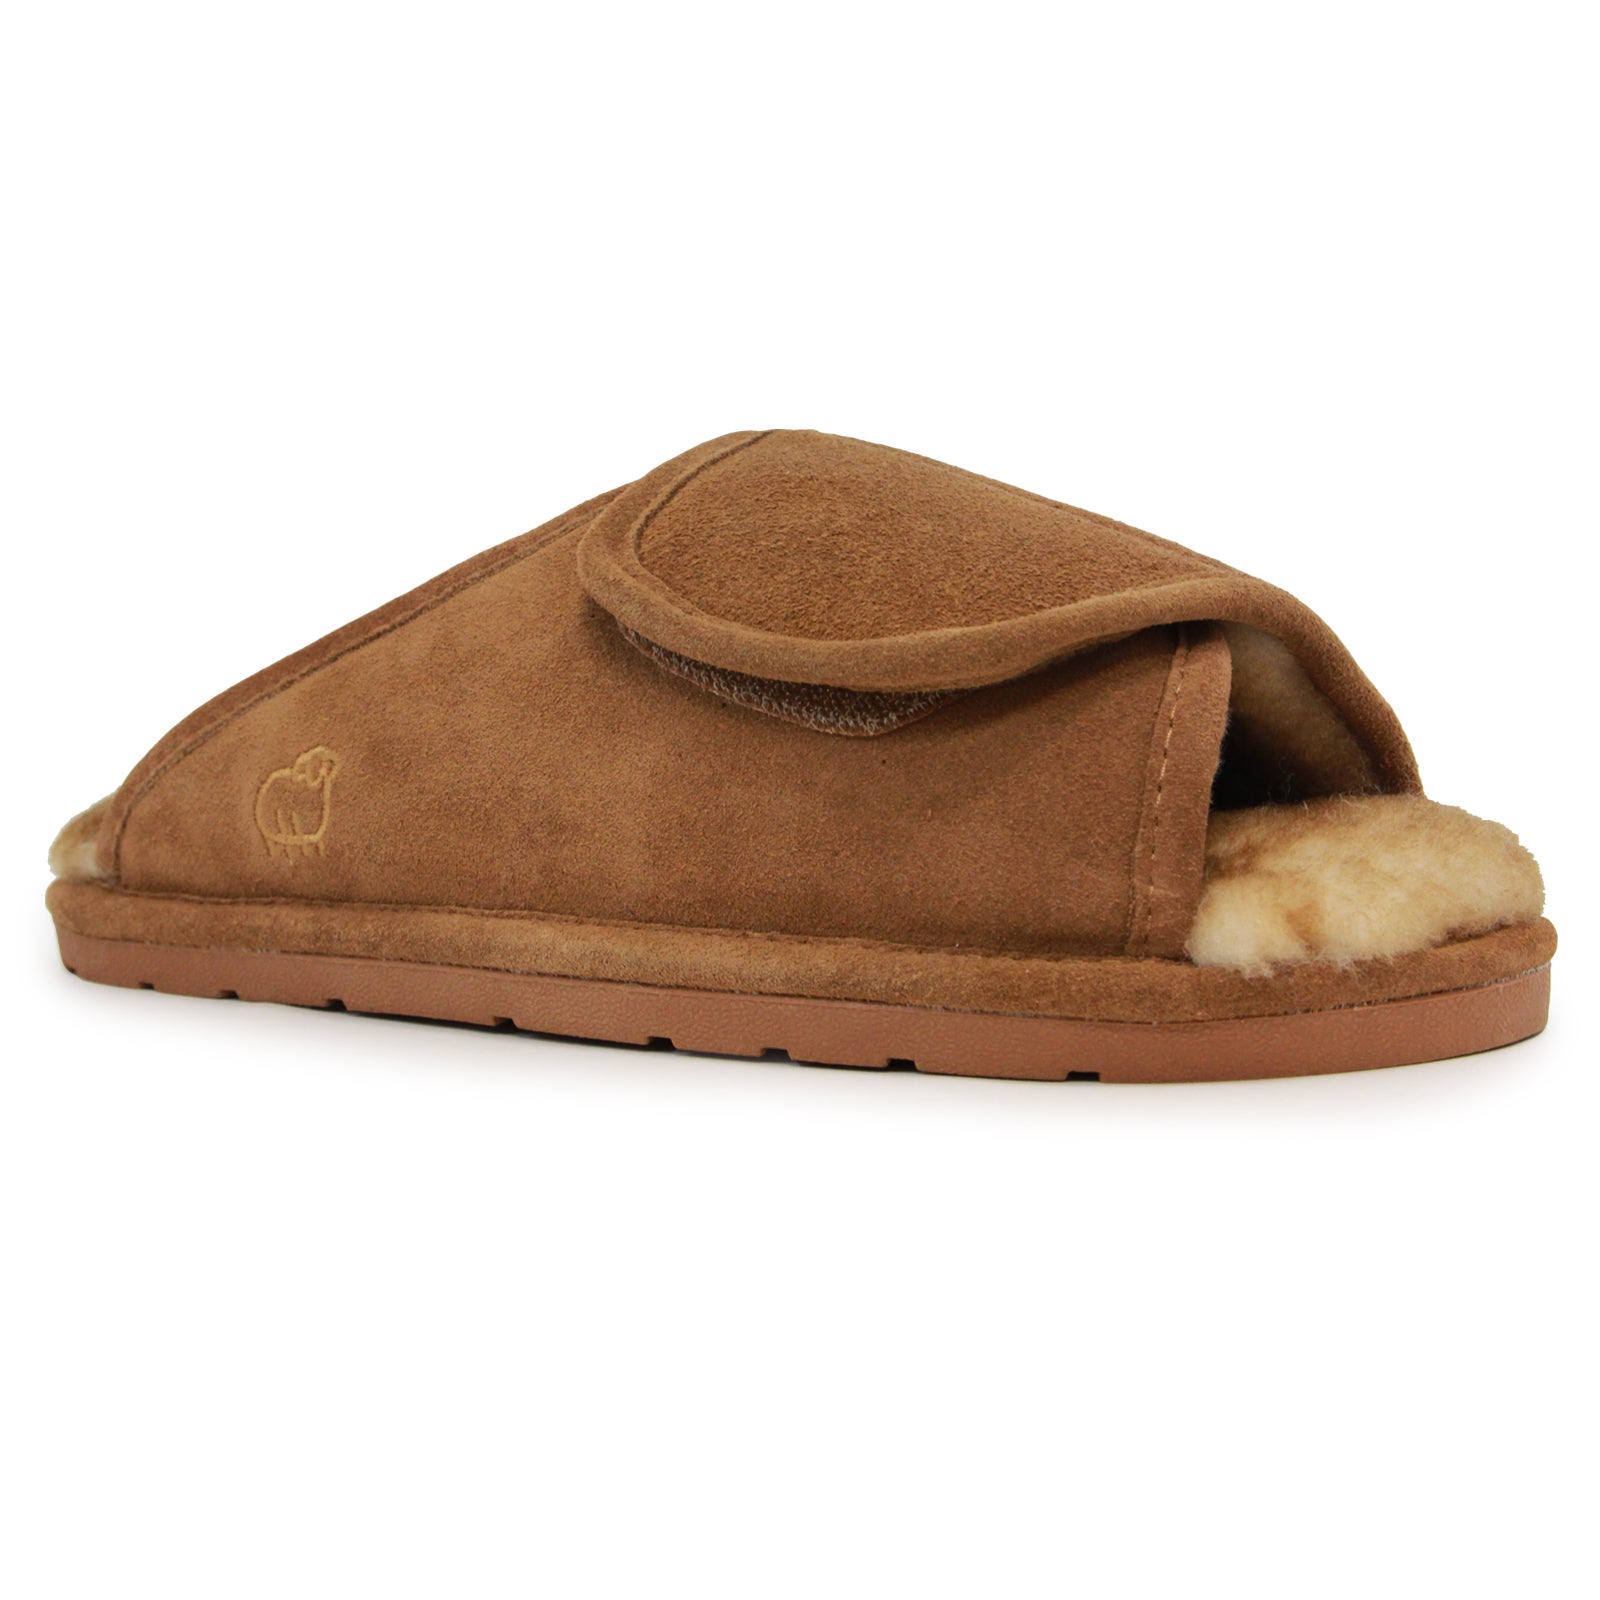 8e9b5c3a78f68 Shop Men s Chestnut Suede